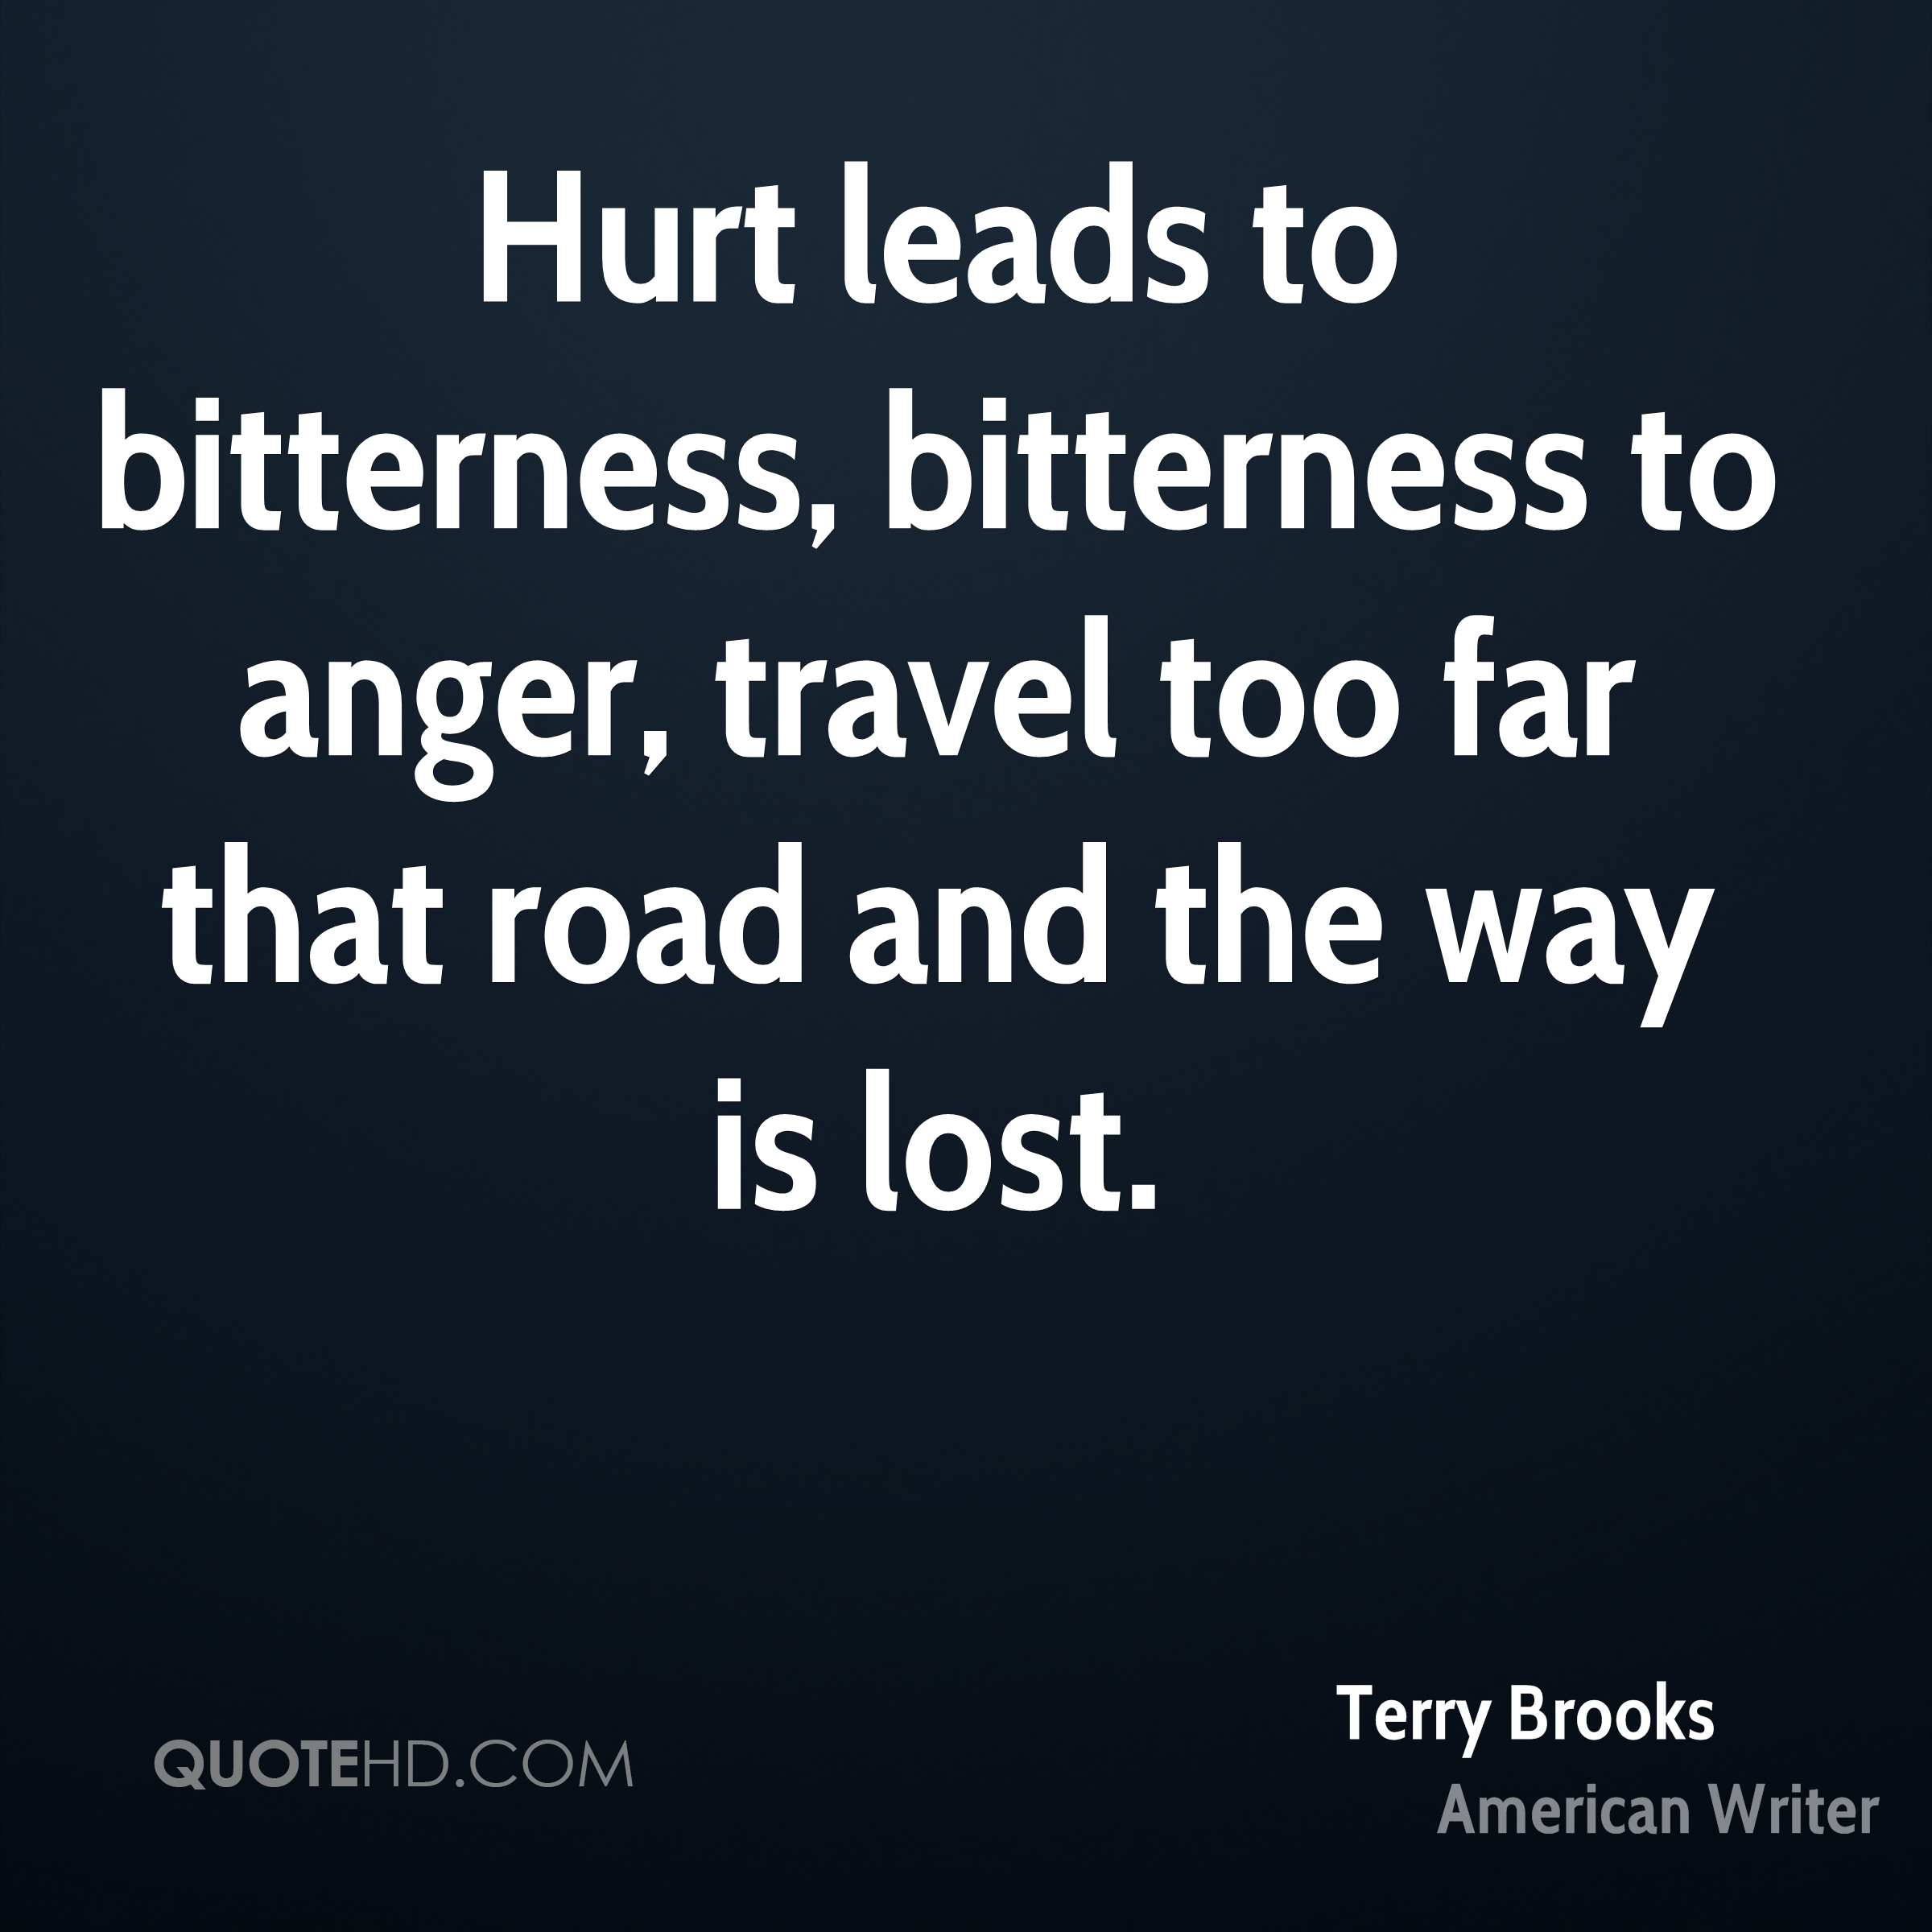 Hurt leads to bitterness, bitterness to anger, travel too far that road and the way is lost.